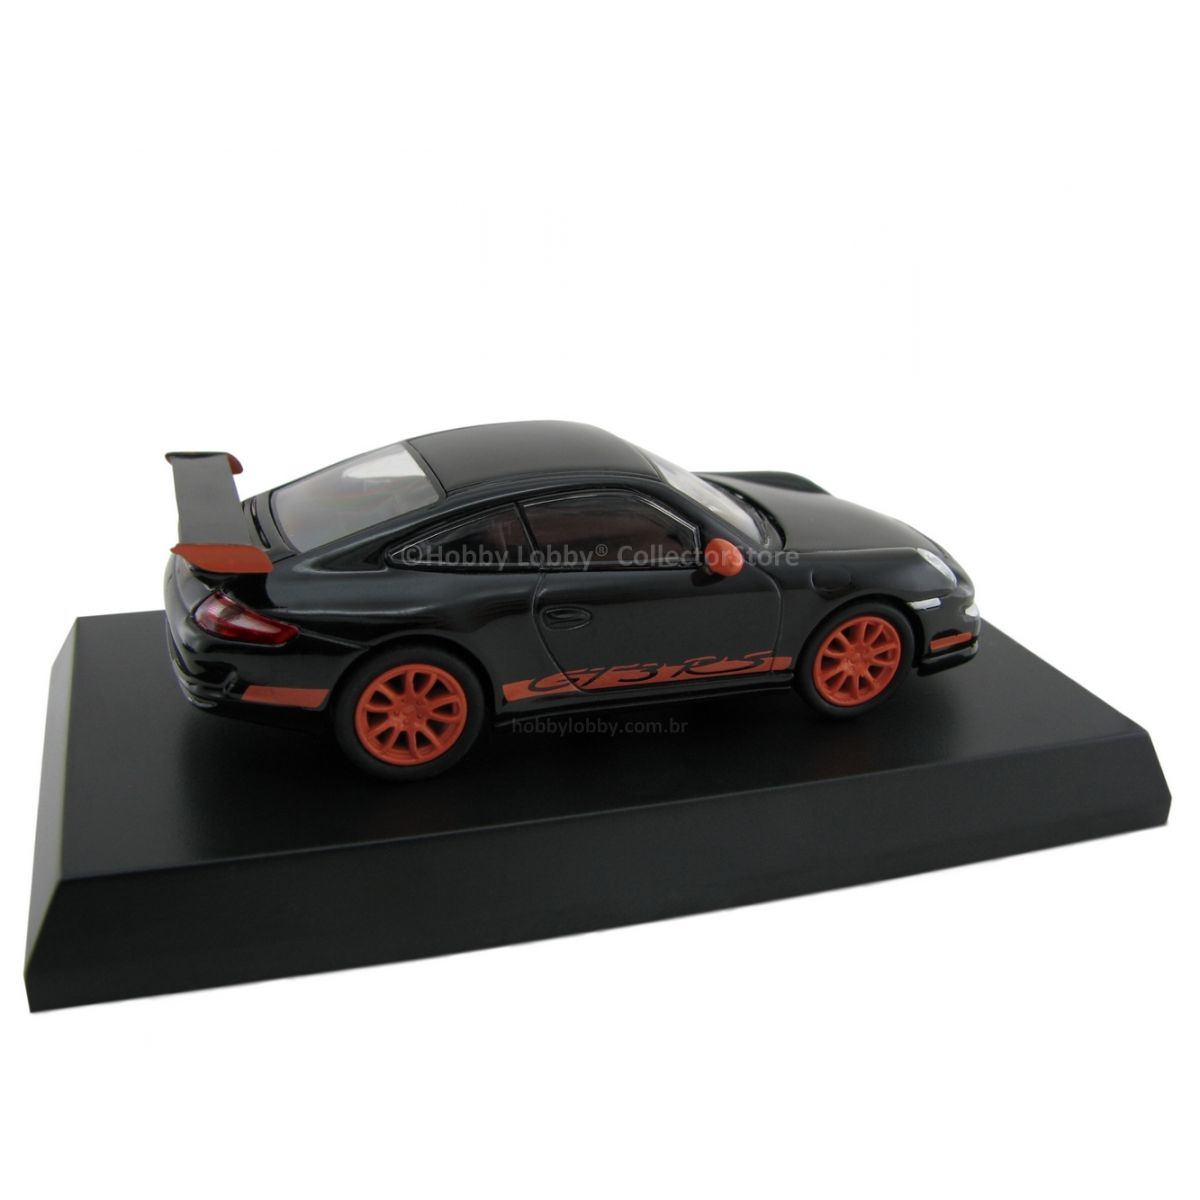 Kyosho - Porsche 911 GT3 RS  - Hobby Lobby CollectorStore